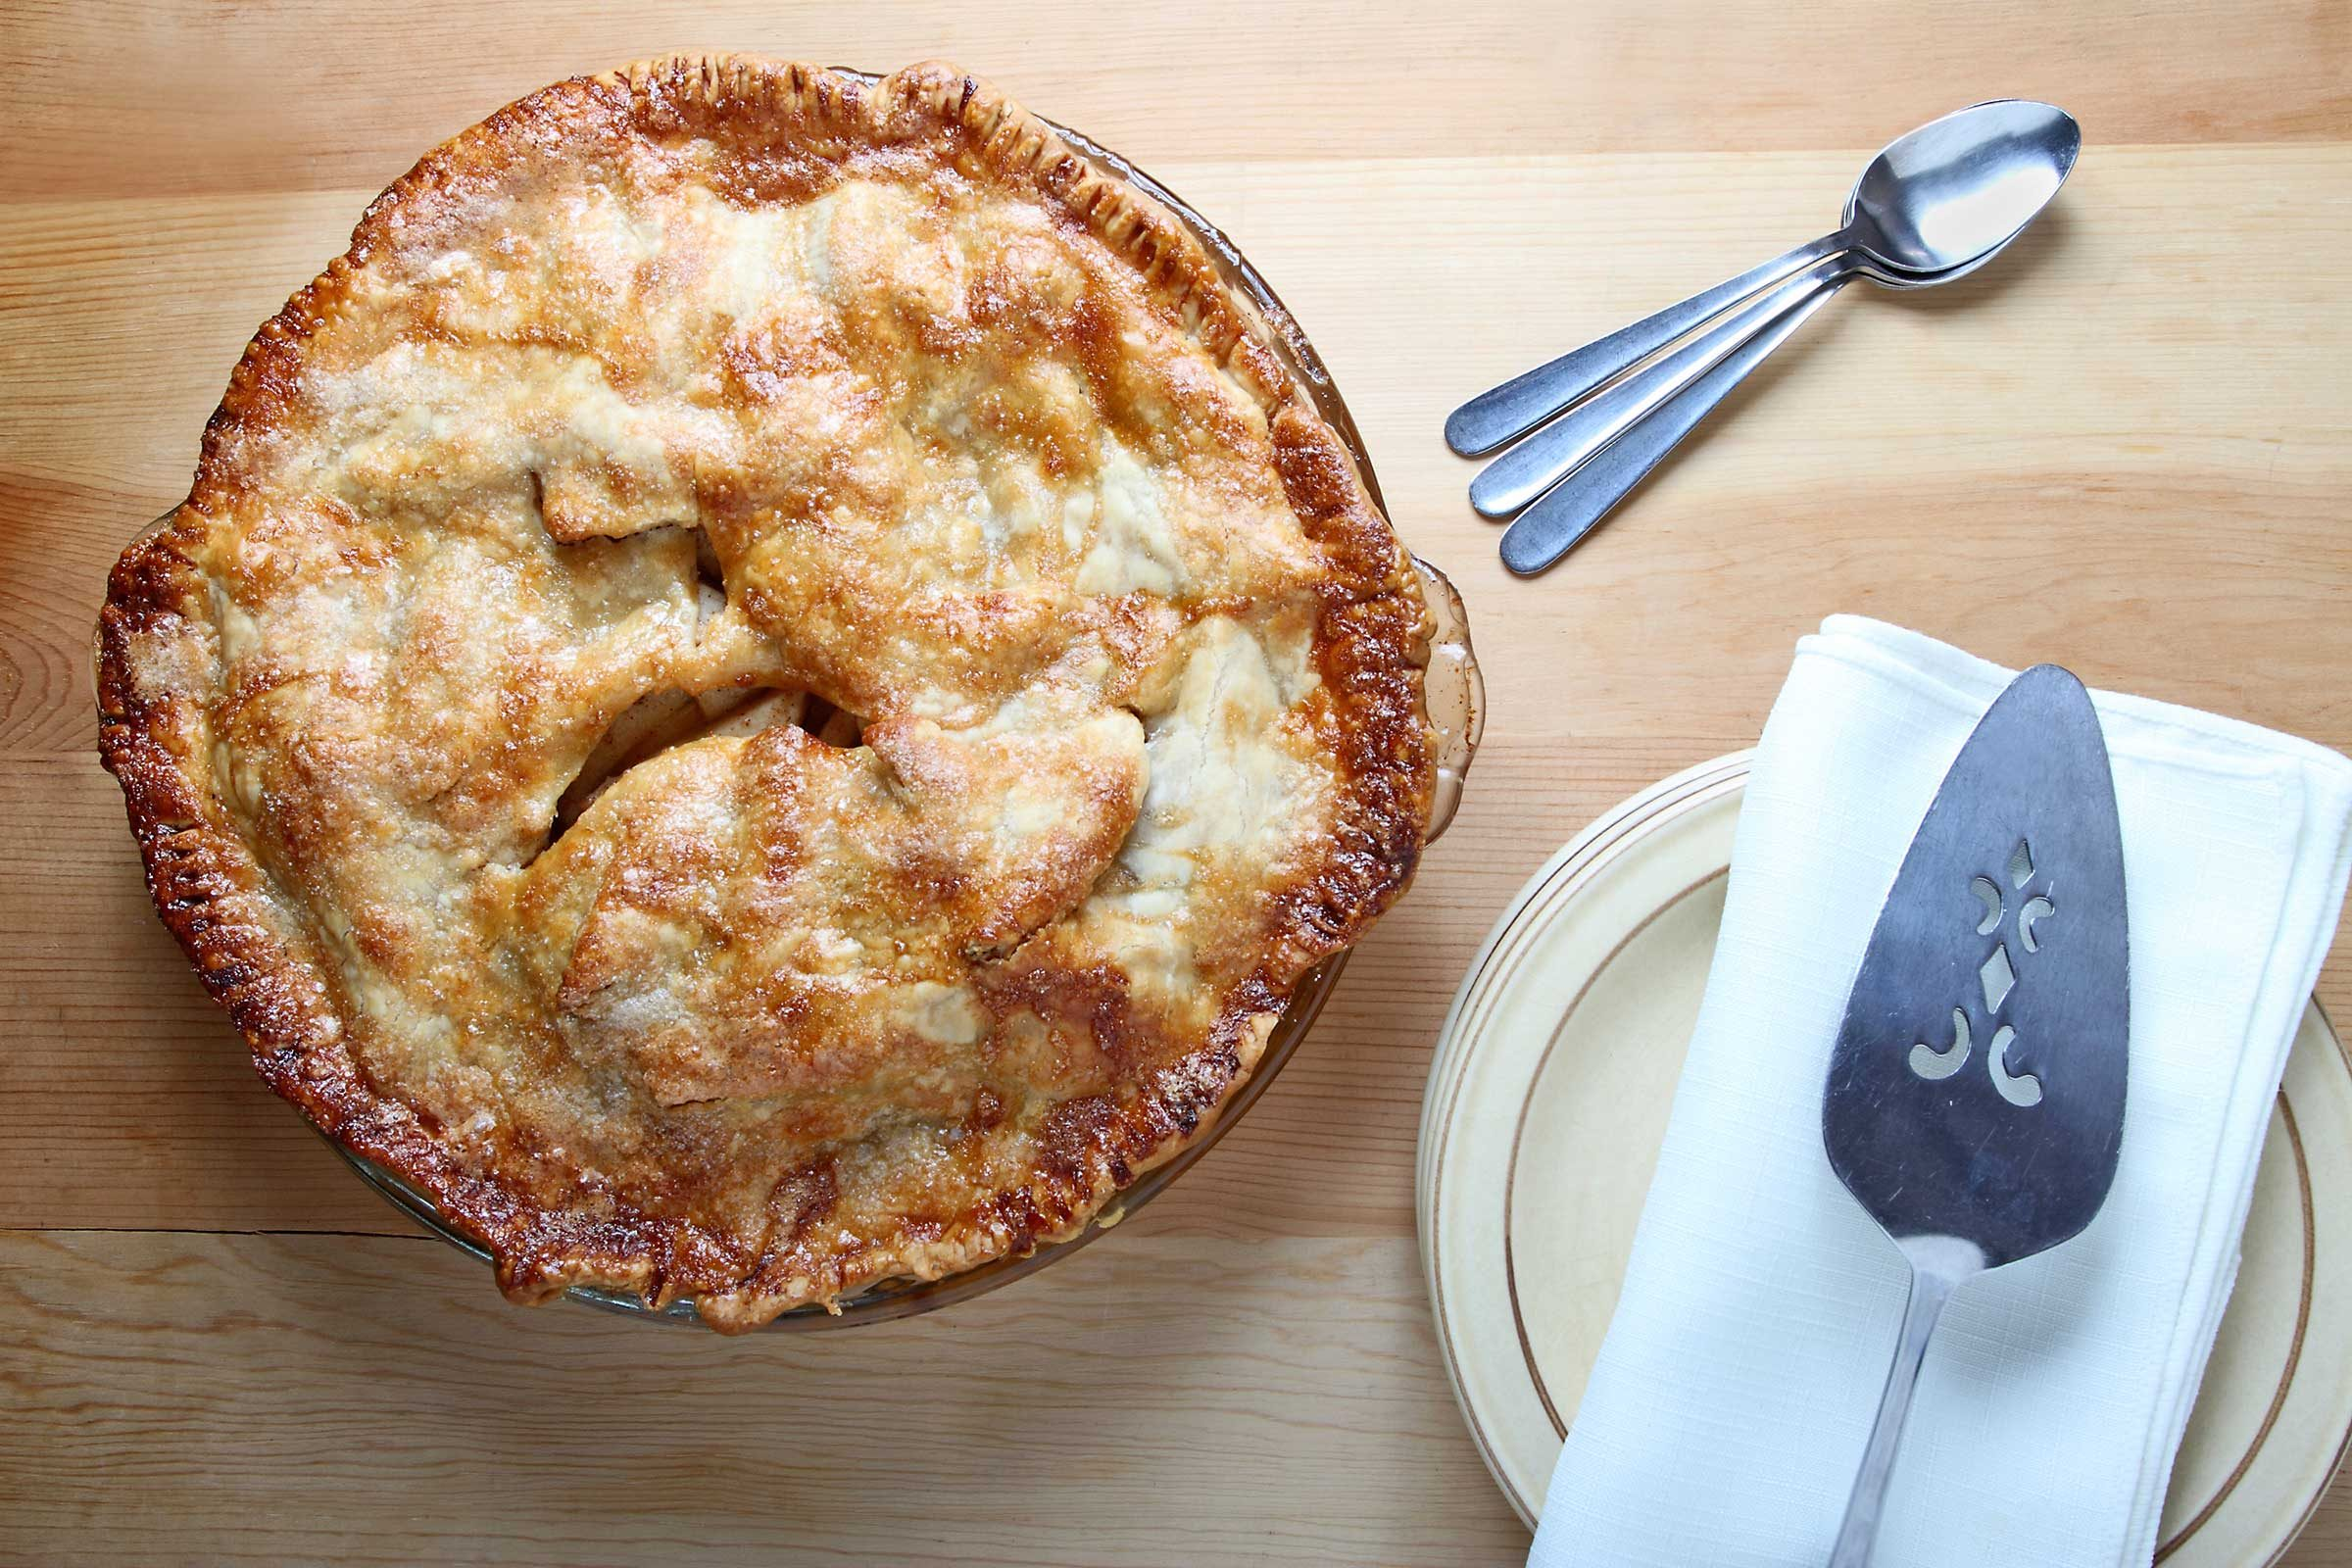 Apple pie: 411 calories, 19 g of fat per slice